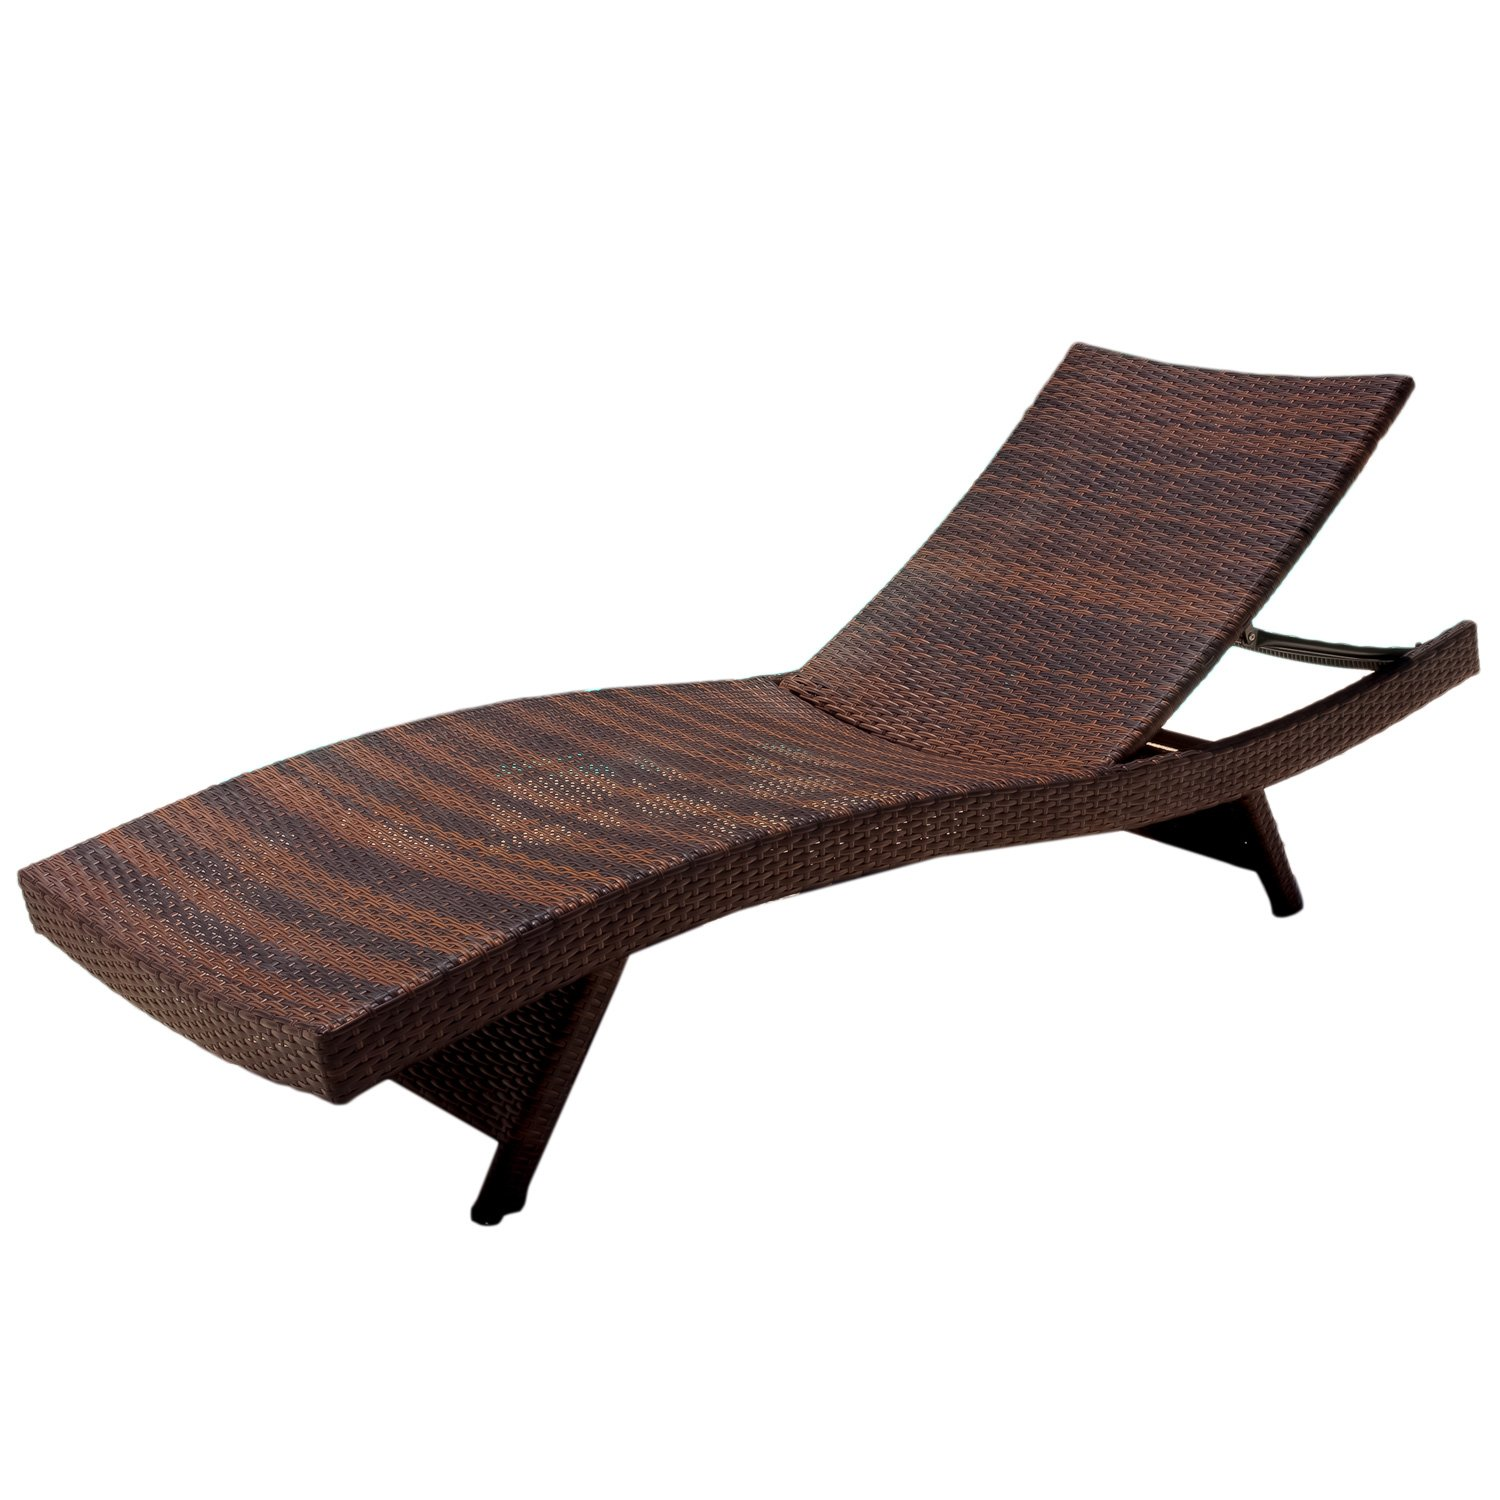 Amazon.com : Best Selling Outdoor Adjustable Wicker Lounge, Brown, 1 Pack :  Patio Lounge Chairs : Garden U0026 Outdoor